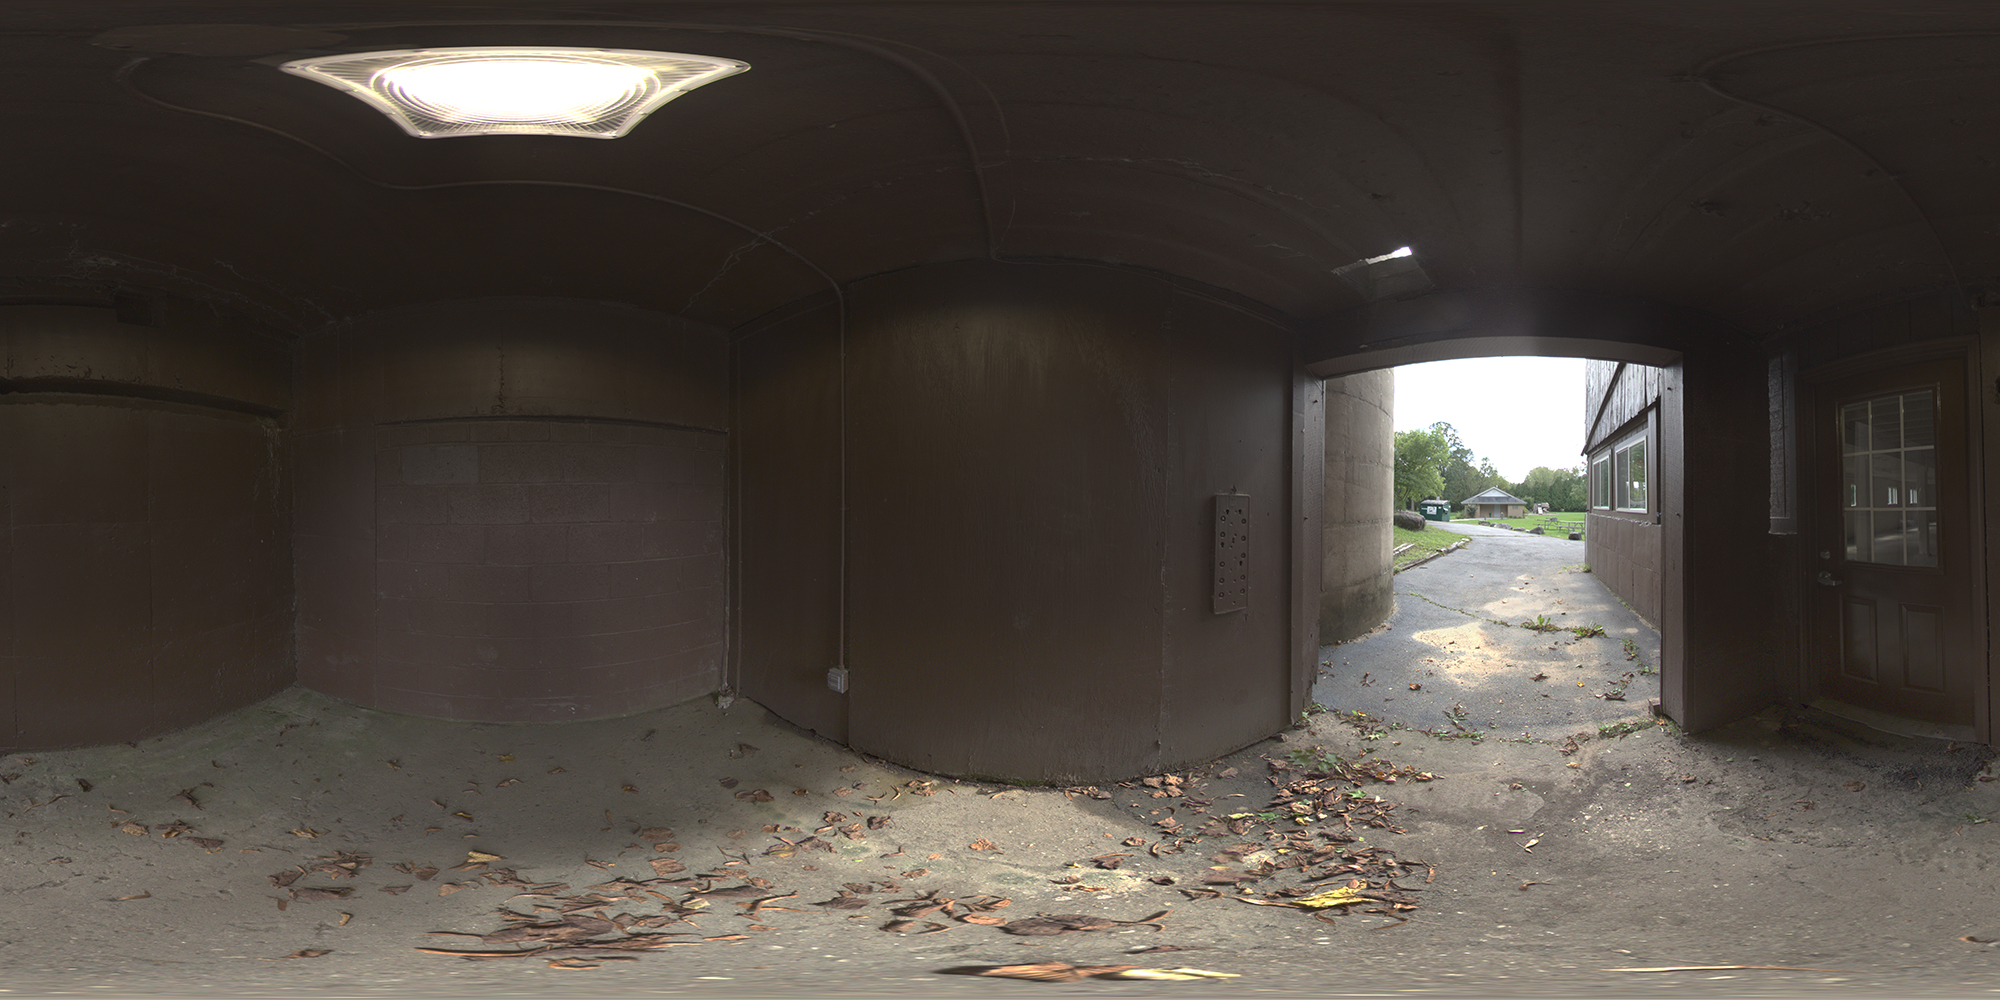 Pano 22 Preview